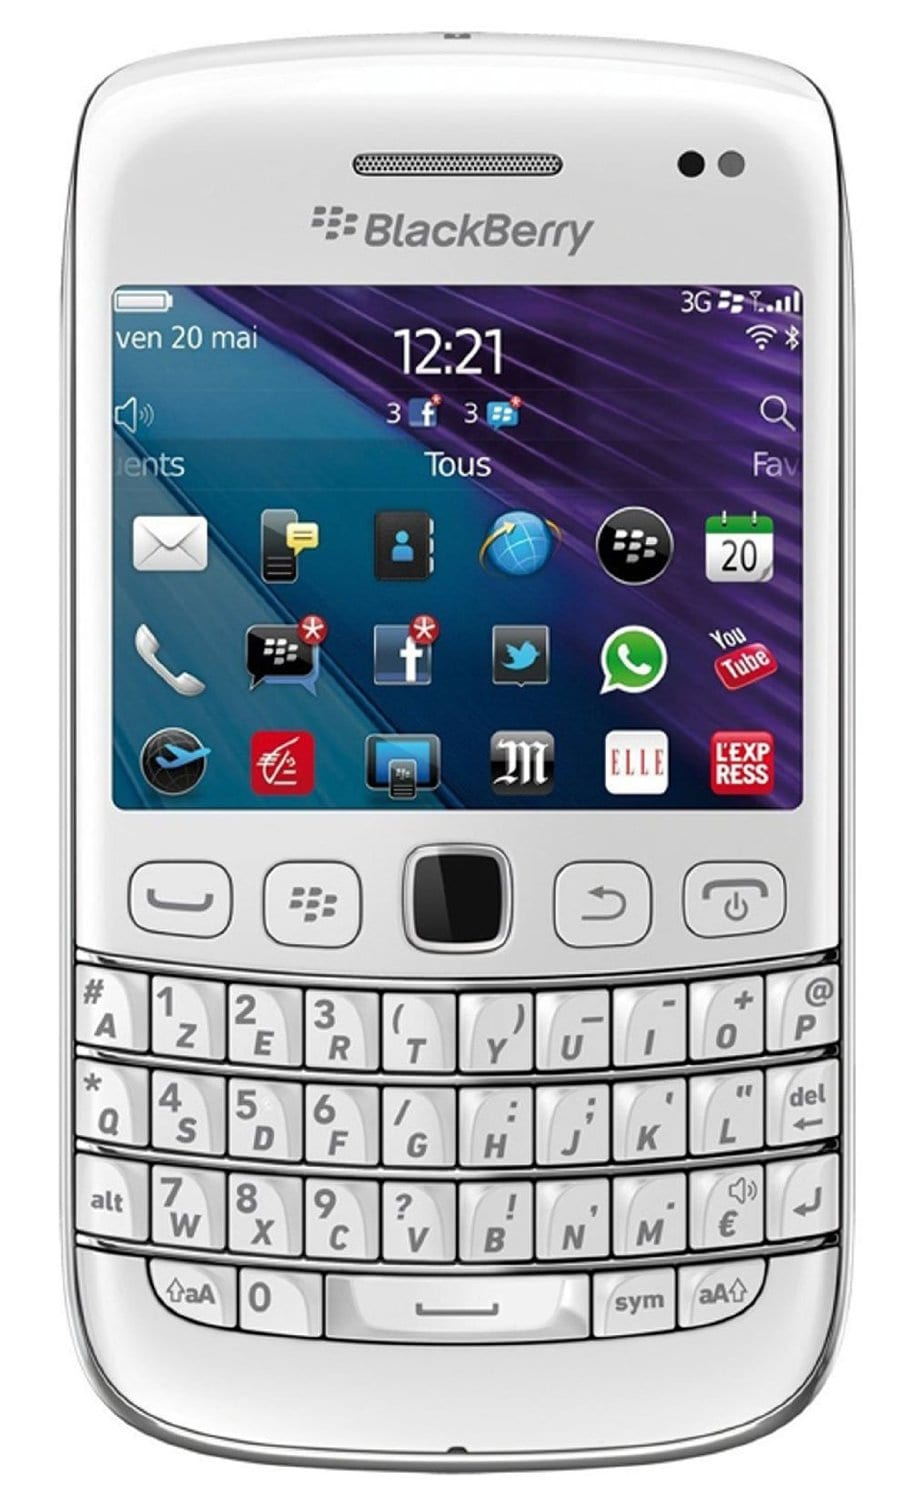 buy blackberry bold 9790 white 768mb ram 8gb price in india 20 mar 2019 specification. Black Bedroom Furniture Sets. Home Design Ideas